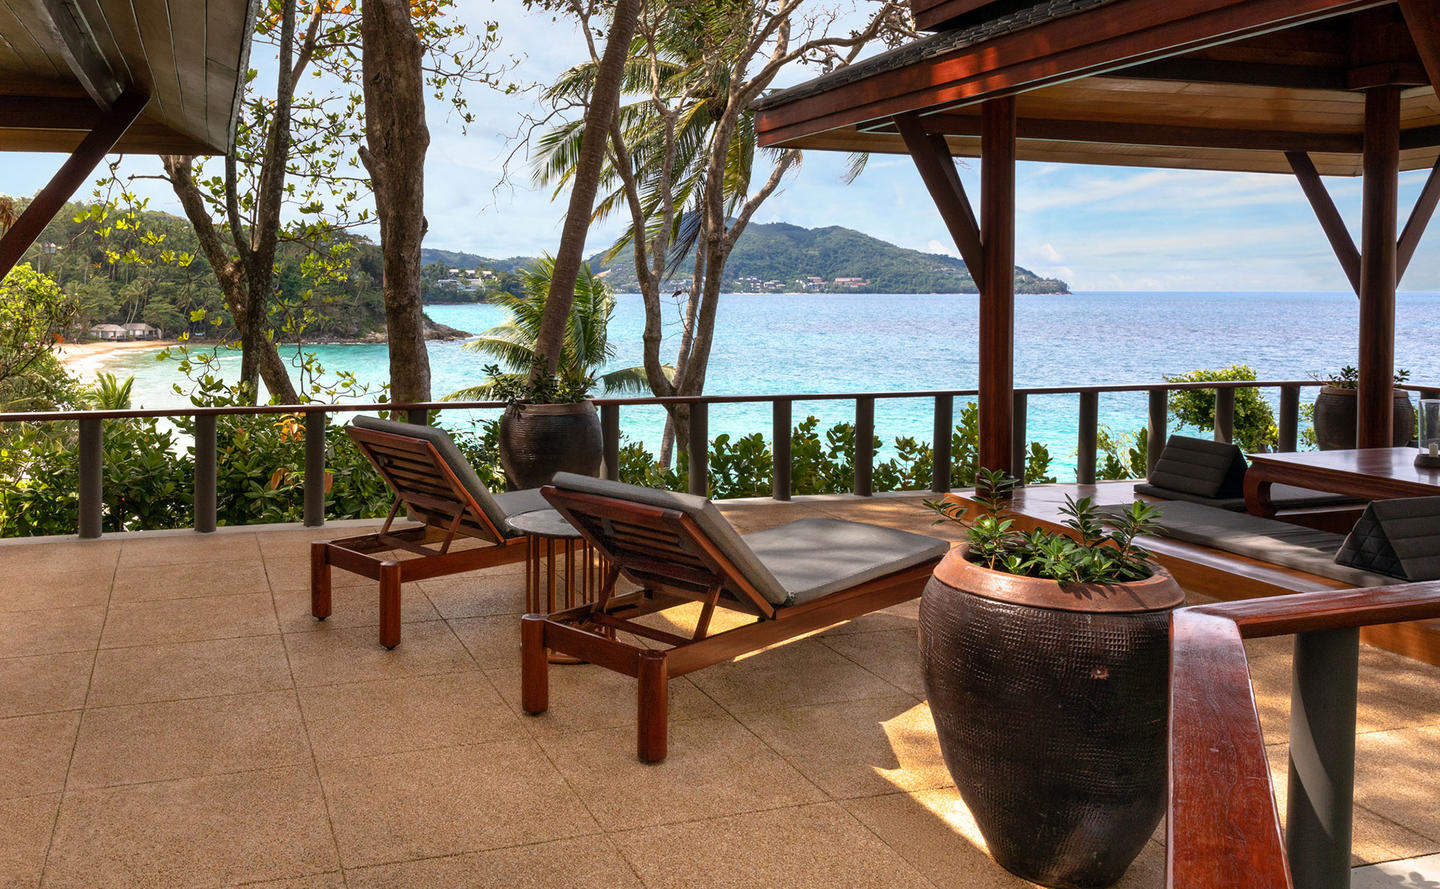 Terrace with Ocean Views, Deluxe Ocean Pavilion, Amanpuri, Thailand